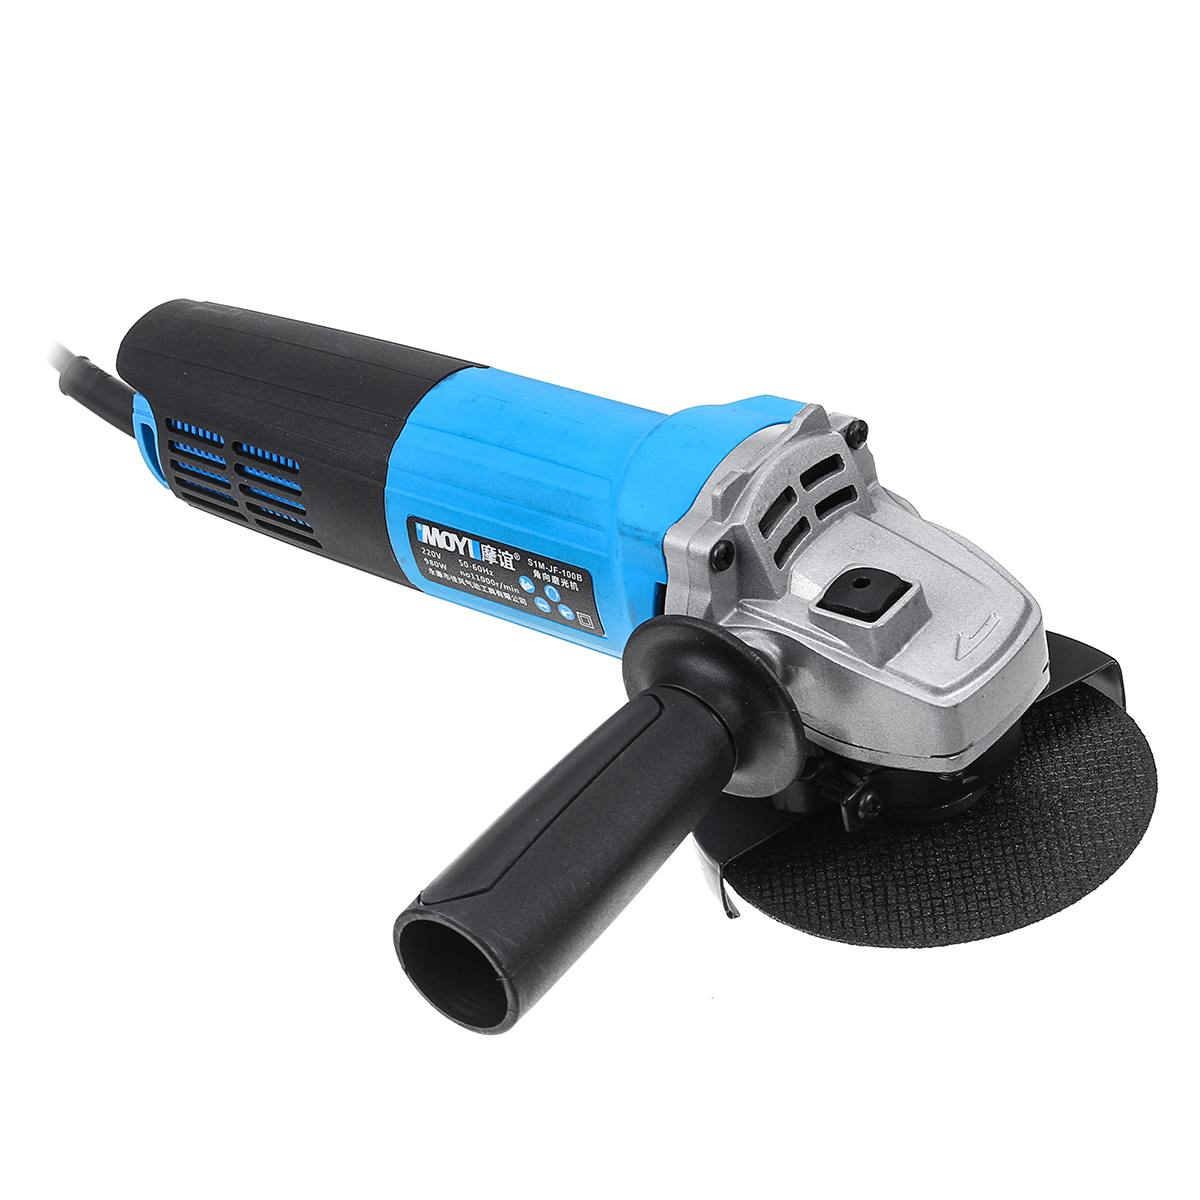 11000r/min Angle Grinder Electric Woodworking Grinding Grinder Machine Cutter Cutting Sanding Polishing Metal Wood Power Tool